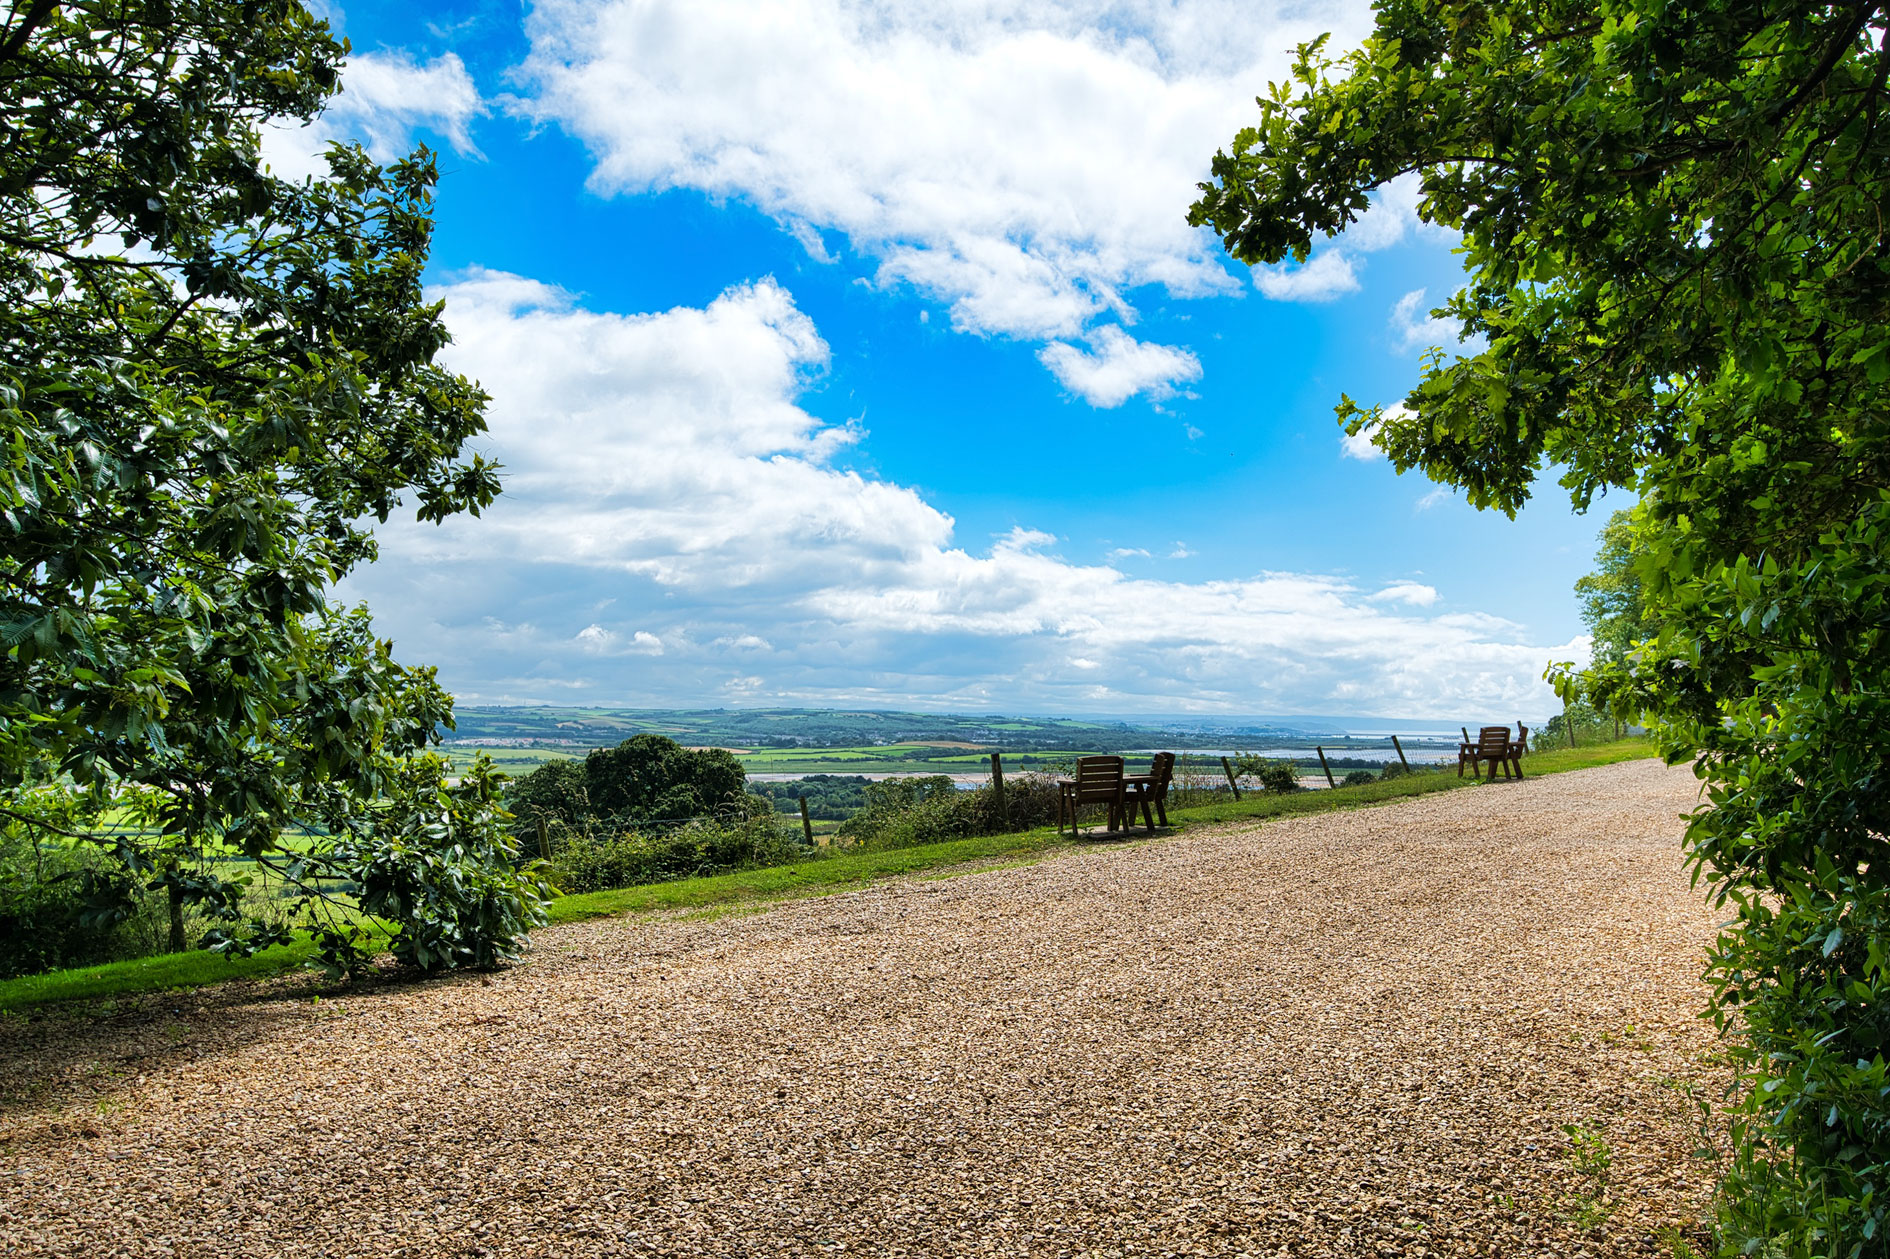 Gravel Driveway With Tress And Distance Countryside Views And Blue Sky